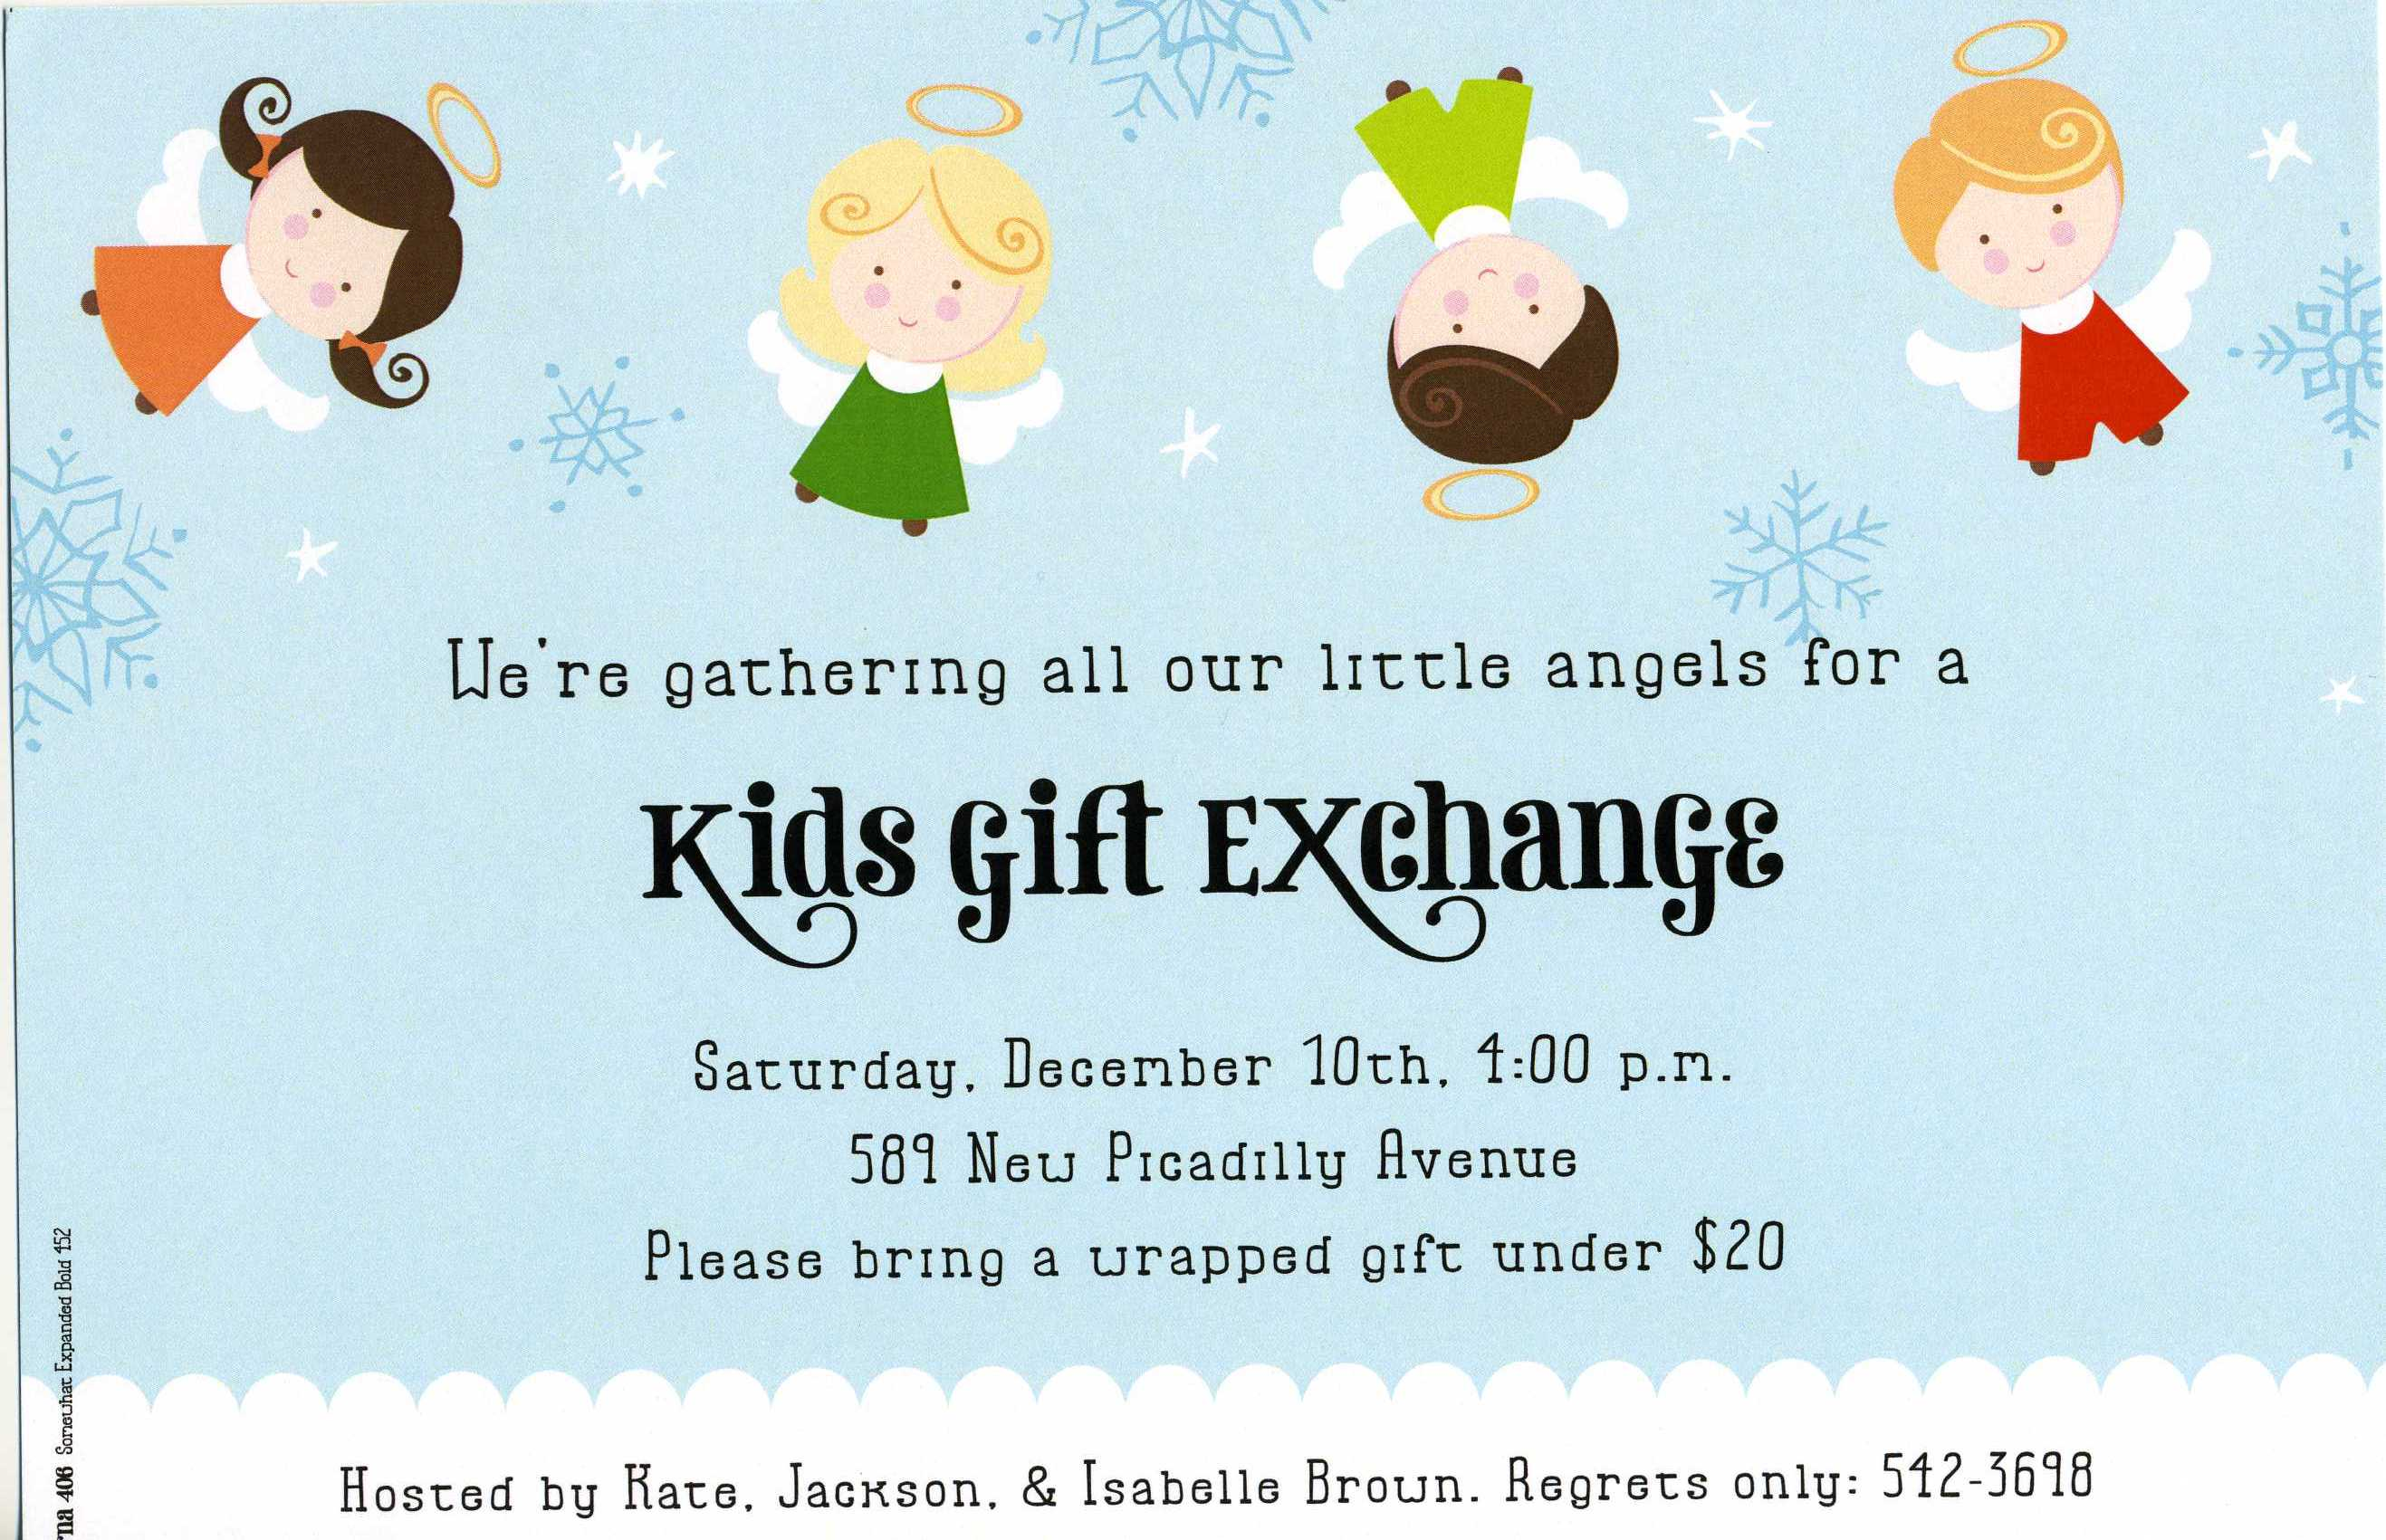 Peace Angels - This adorable invitation shows four sweet angels floating through the pale blue sky next to snowflakes and stars. What a fun way to invite friends and family to your next holiday party or gift exchange! Includes white envelope.